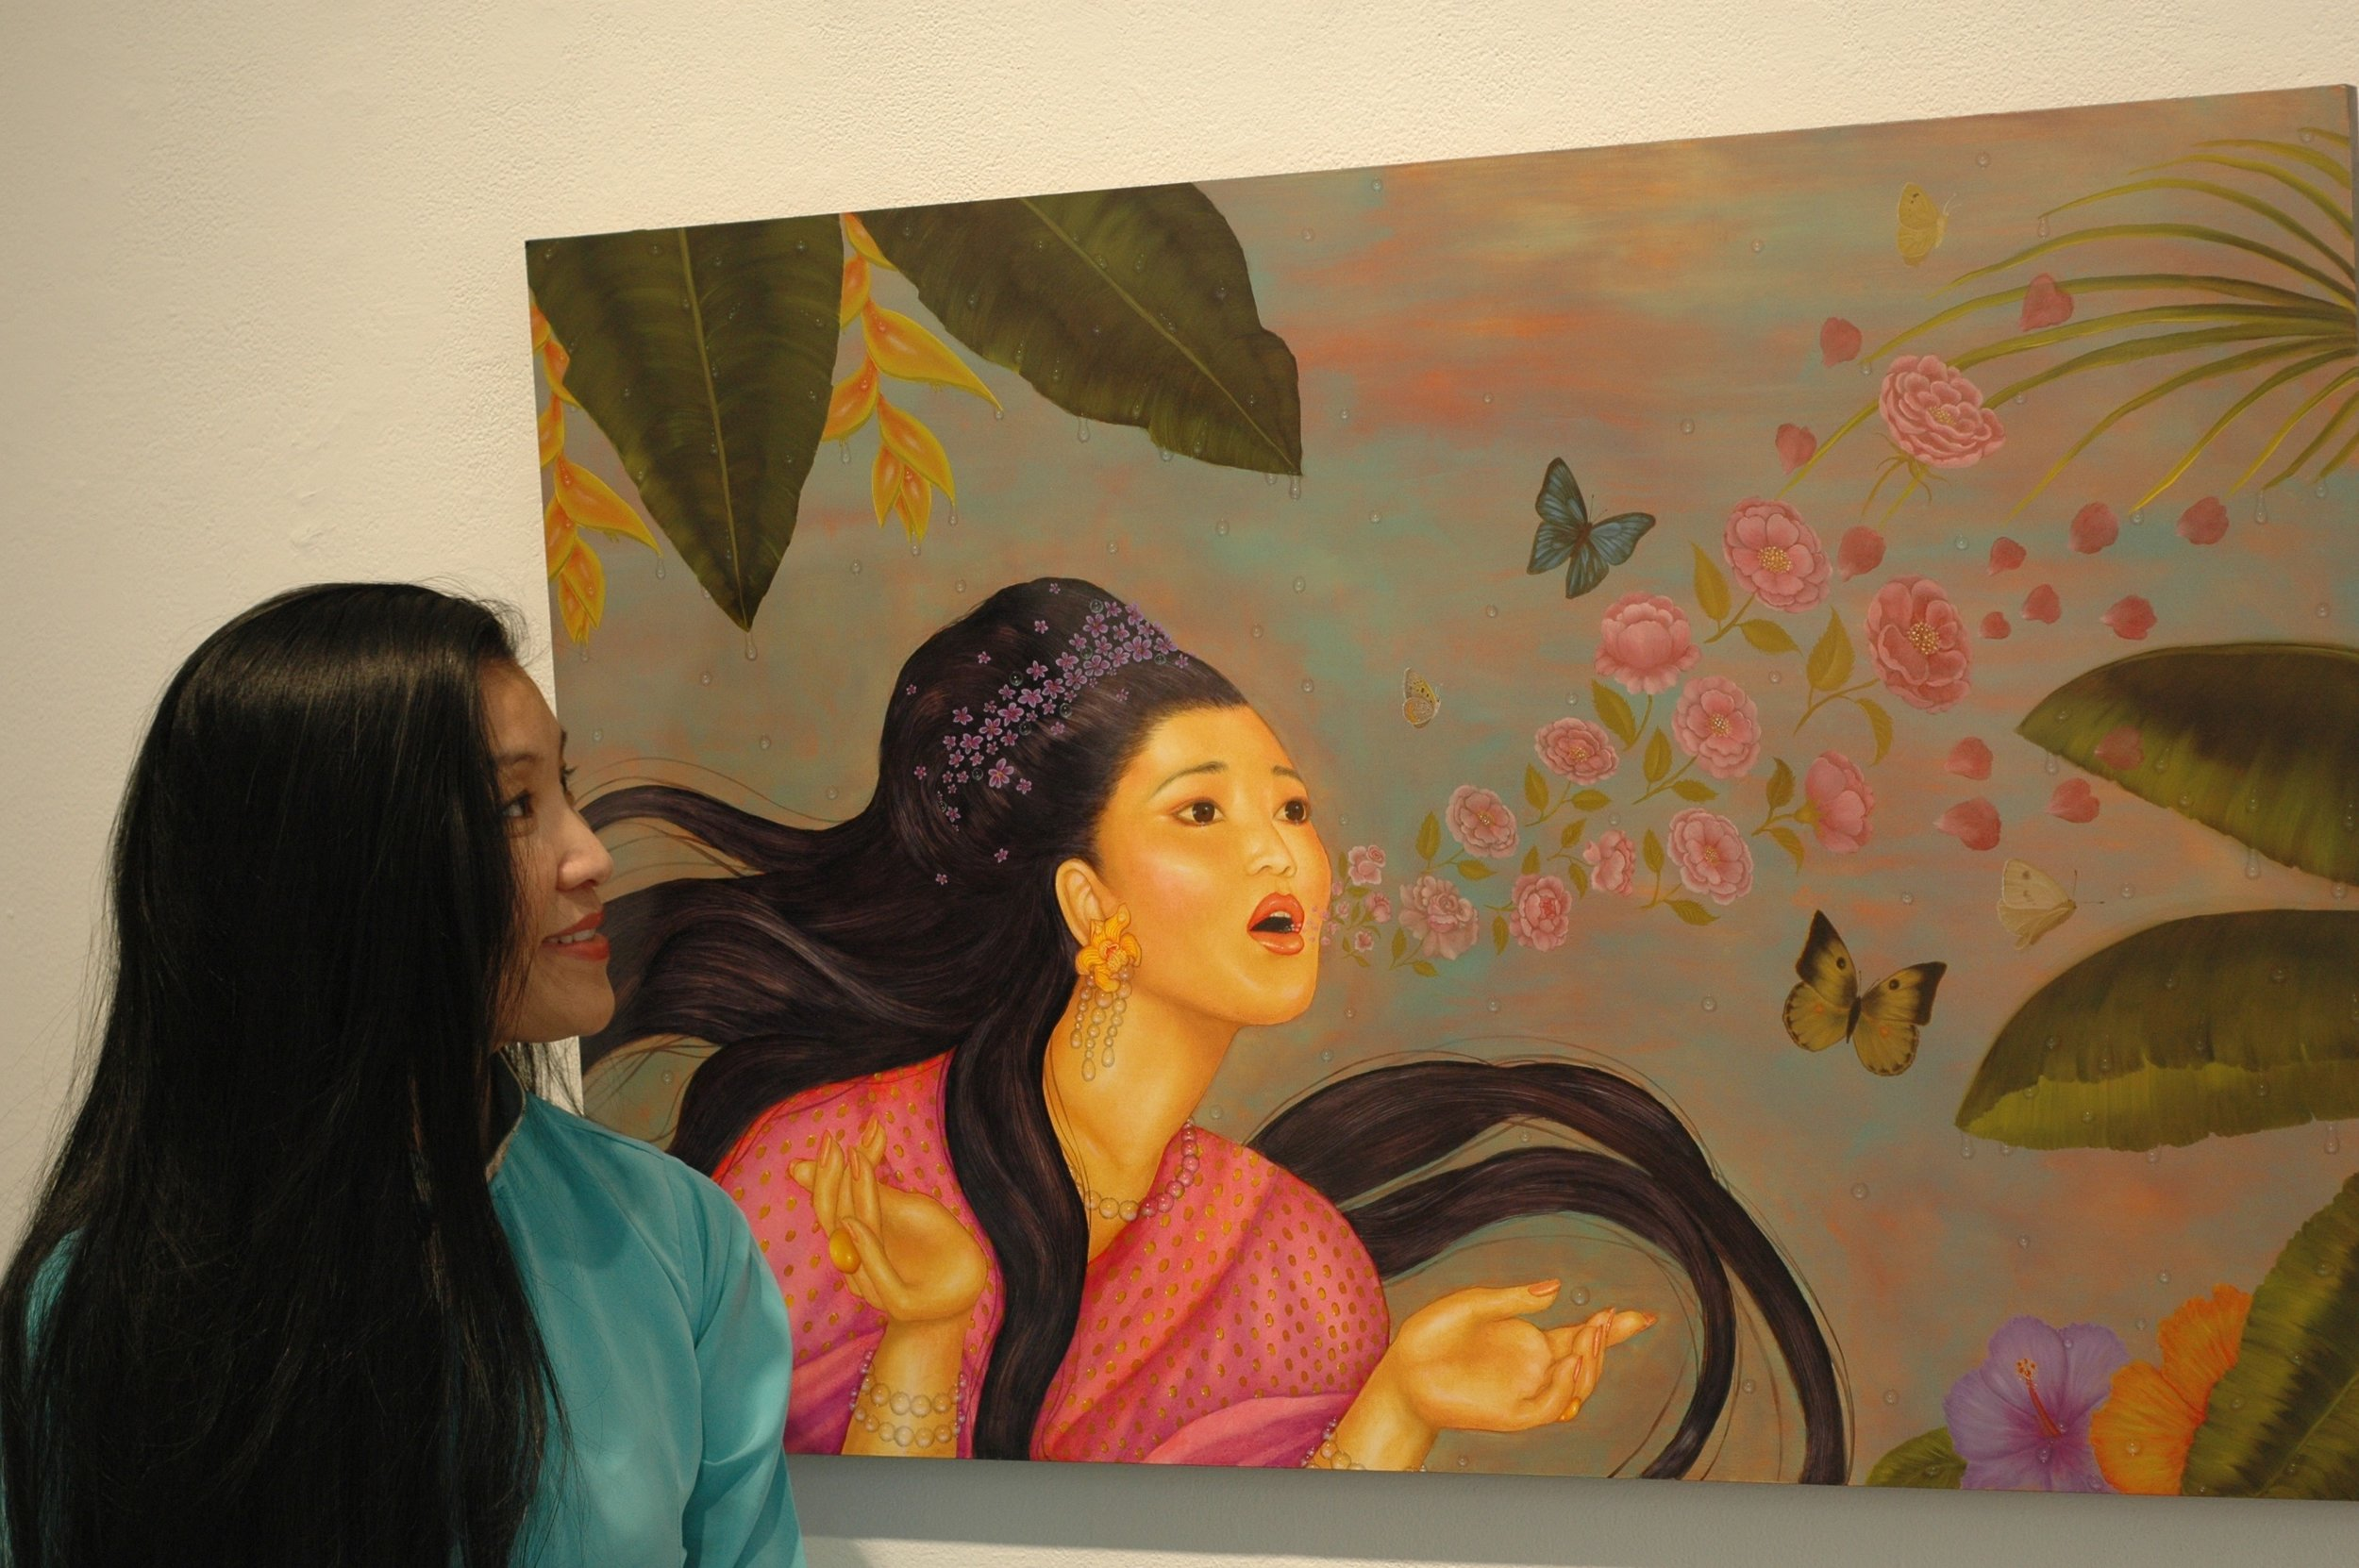 Yungchen Painting by Tino Rodriguez and Virgo.jpg